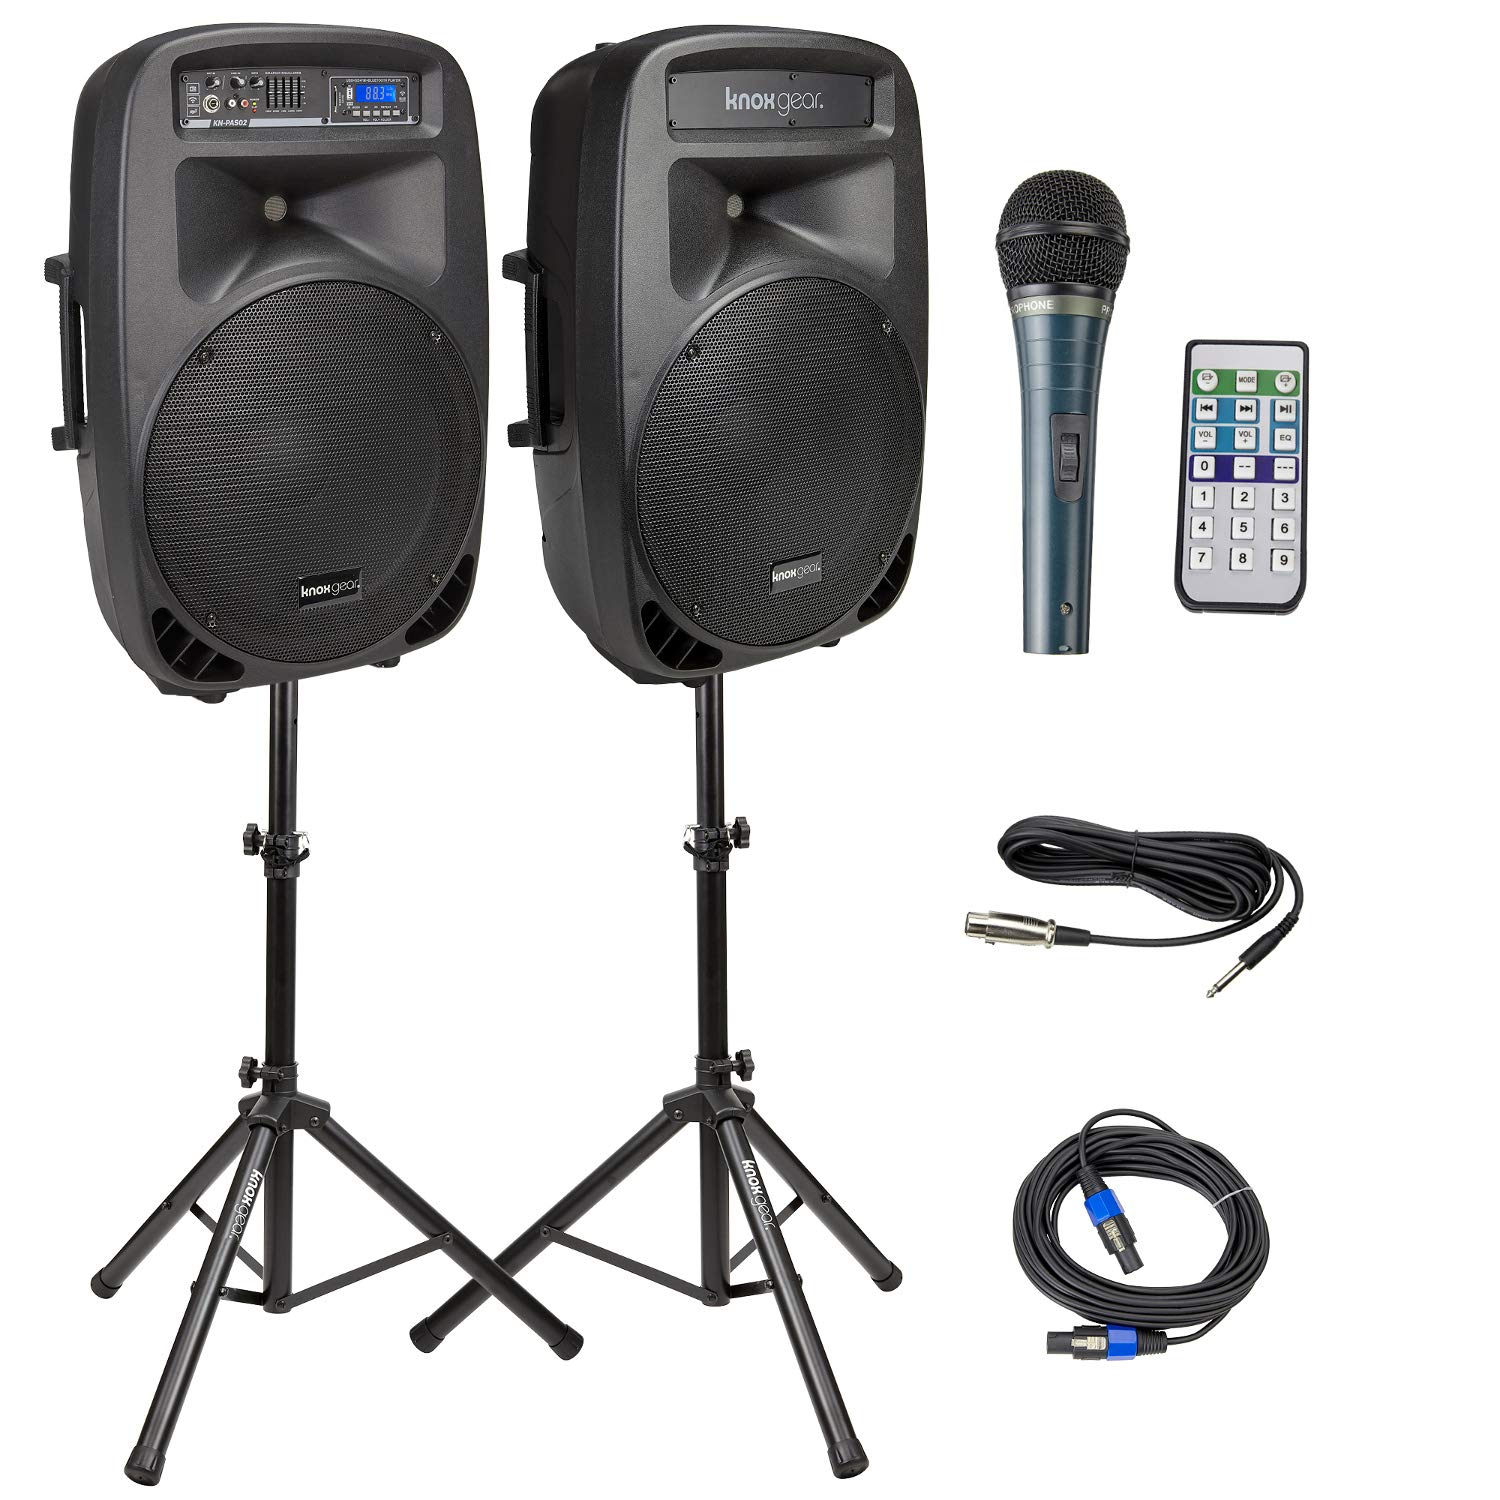 Knox Dual 15'' Speakers, 600 Watt - 8 Piece Portable PA System - Microphone, Tripods, Remote Control - Bluetooth, USB, SD Card, RCA and 1/4'' Inputs - Colorful LED Lights by Knox Gear